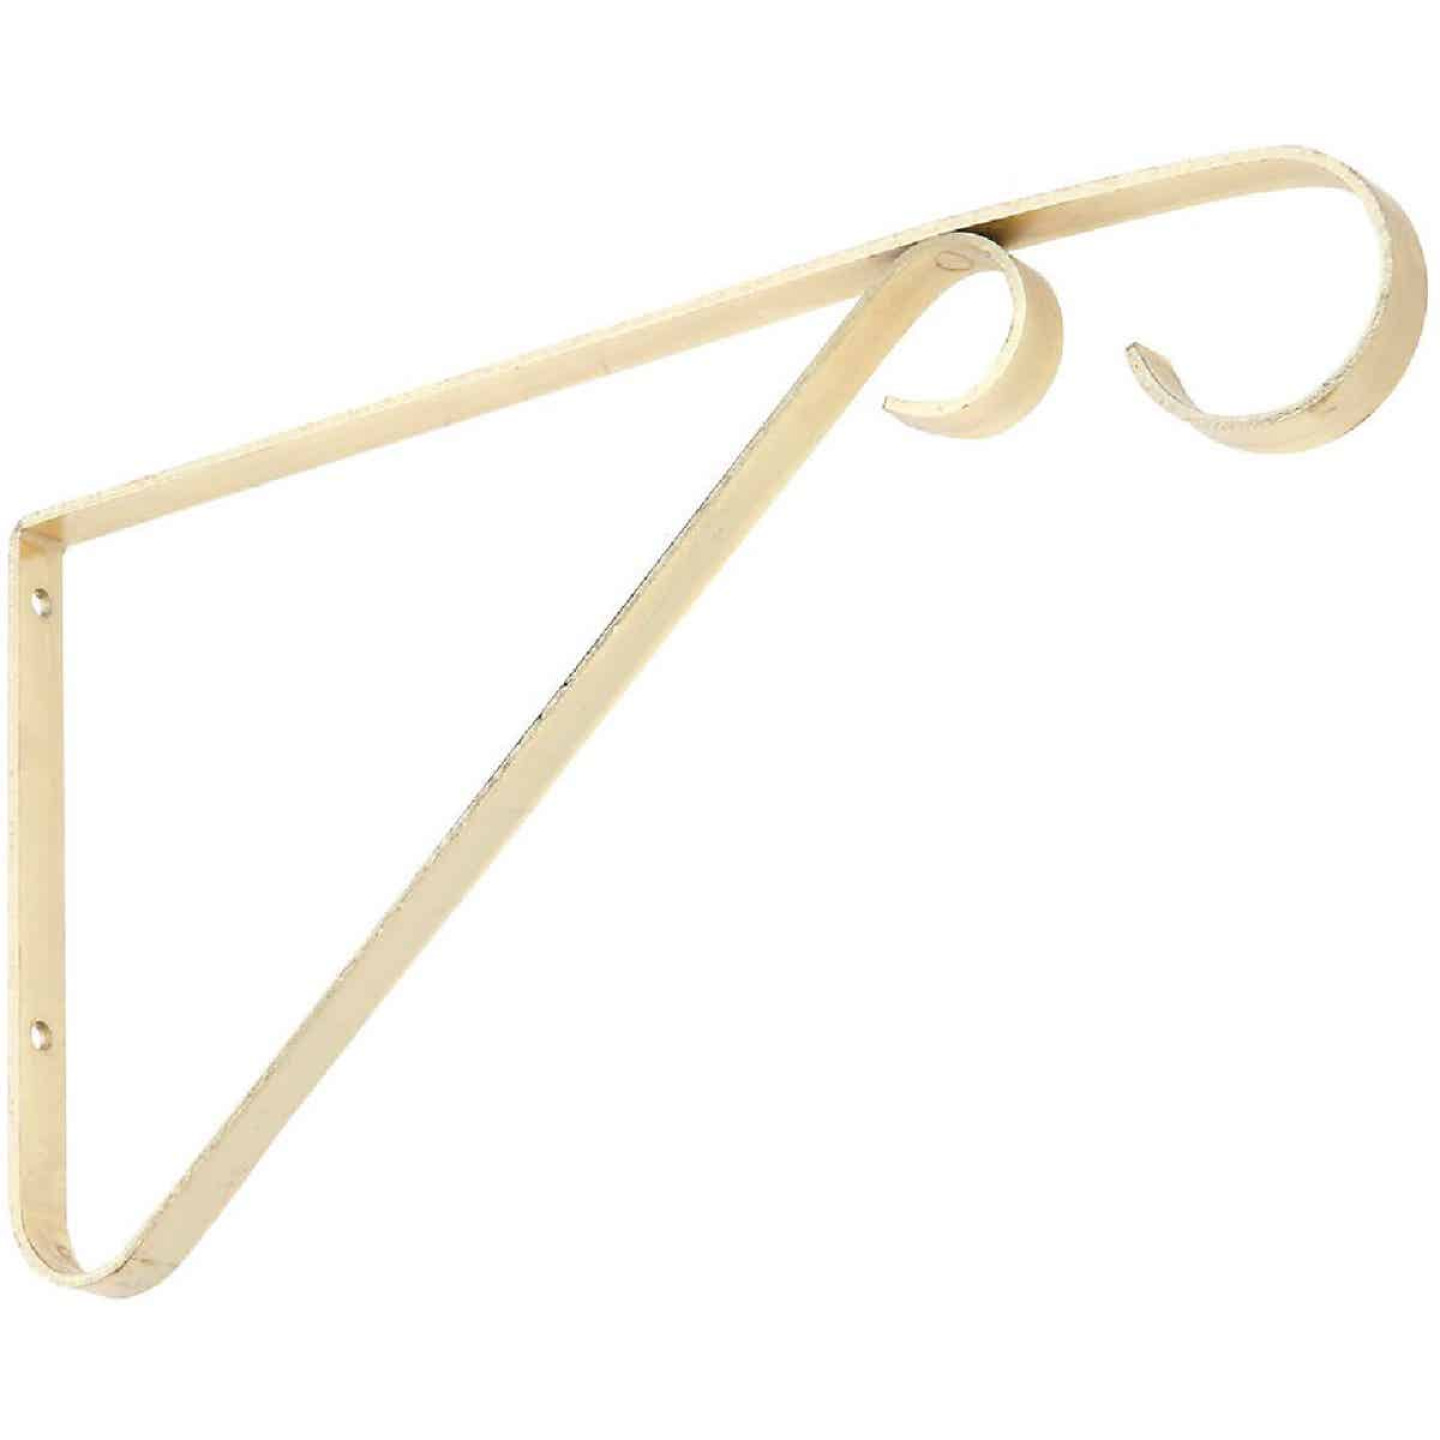 National 6 In. Brass Steel Hanging Plant Bracket Image 1